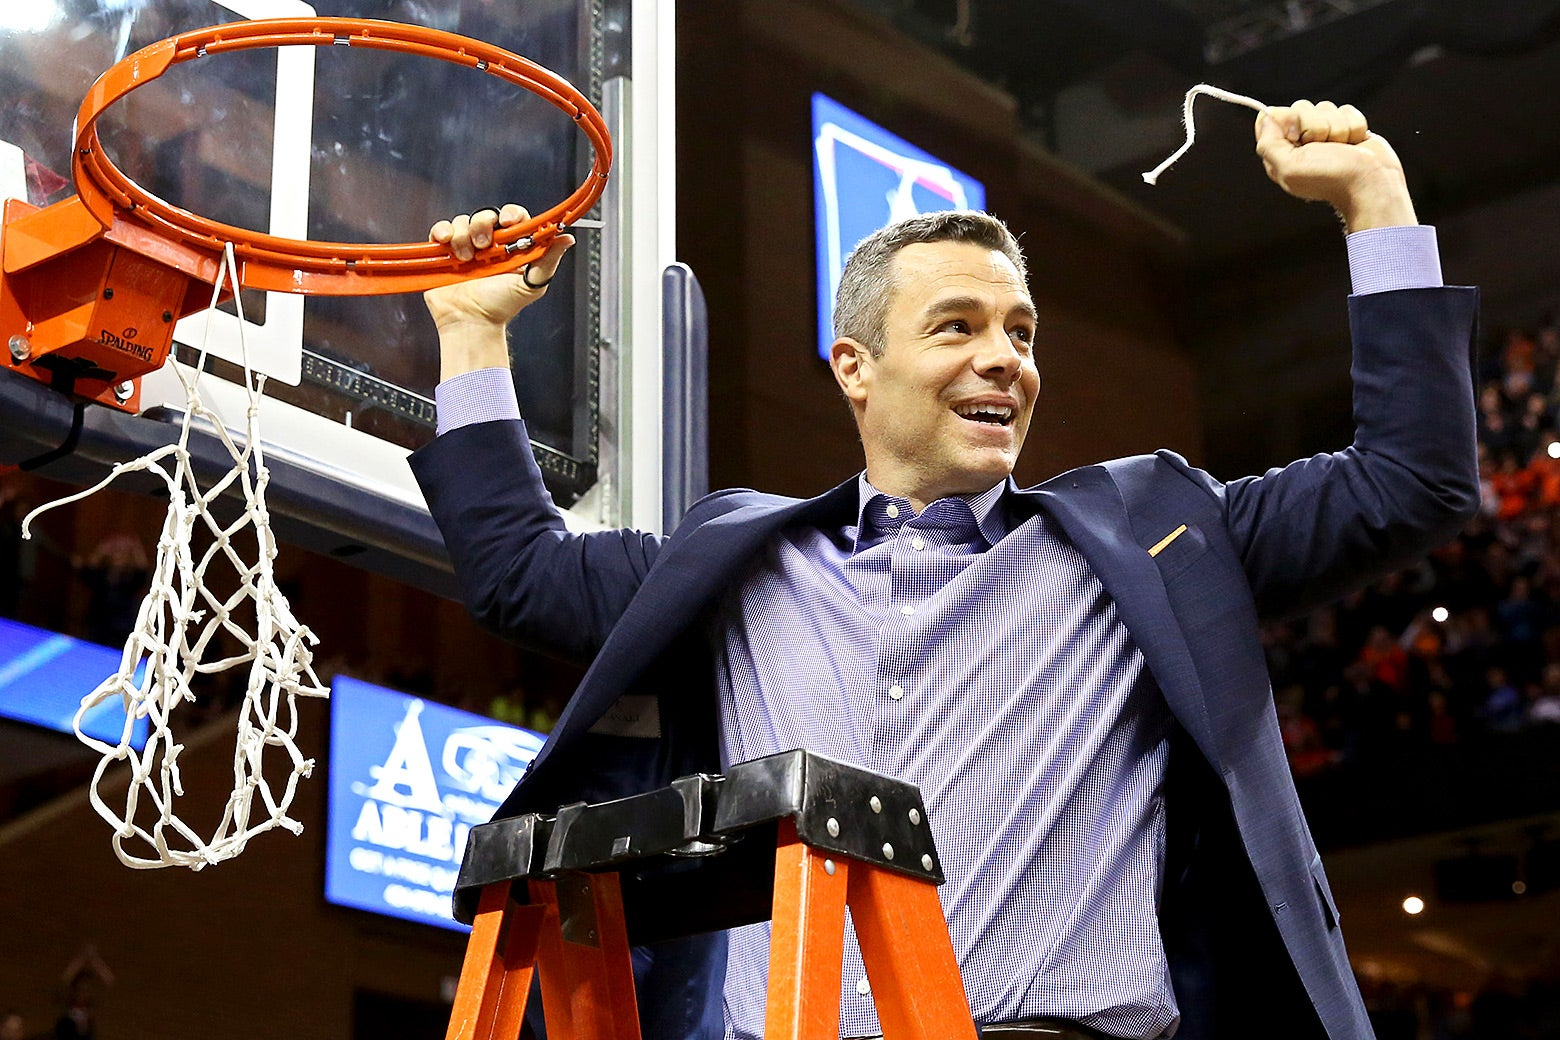 Virginia Cavaliers head coach Tony Bennett